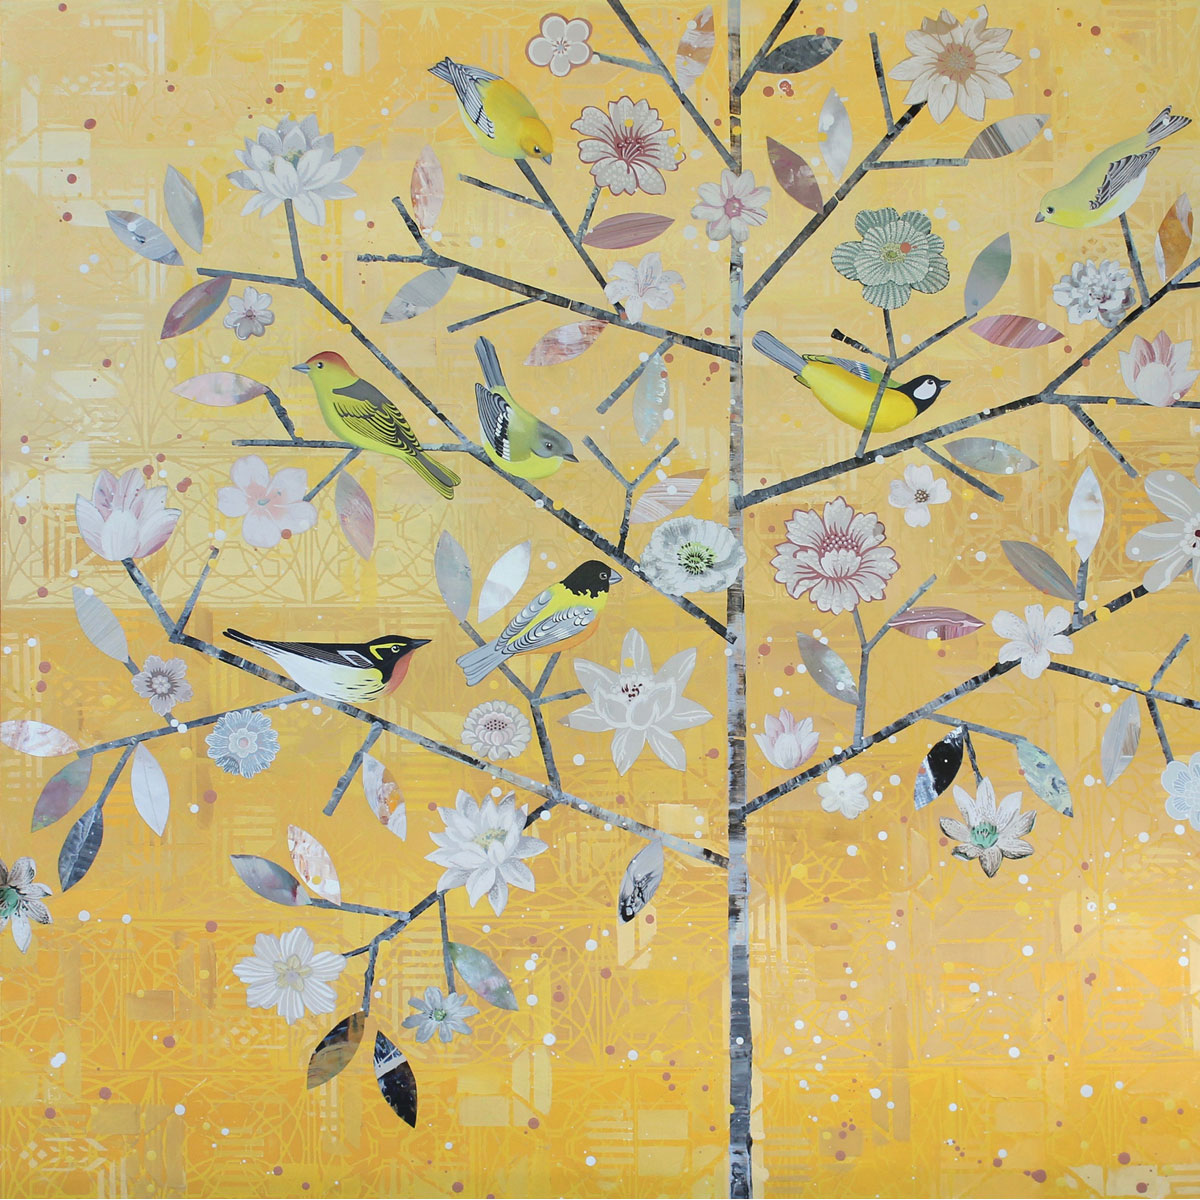 Tree Of White Flowers by Diana Stetson